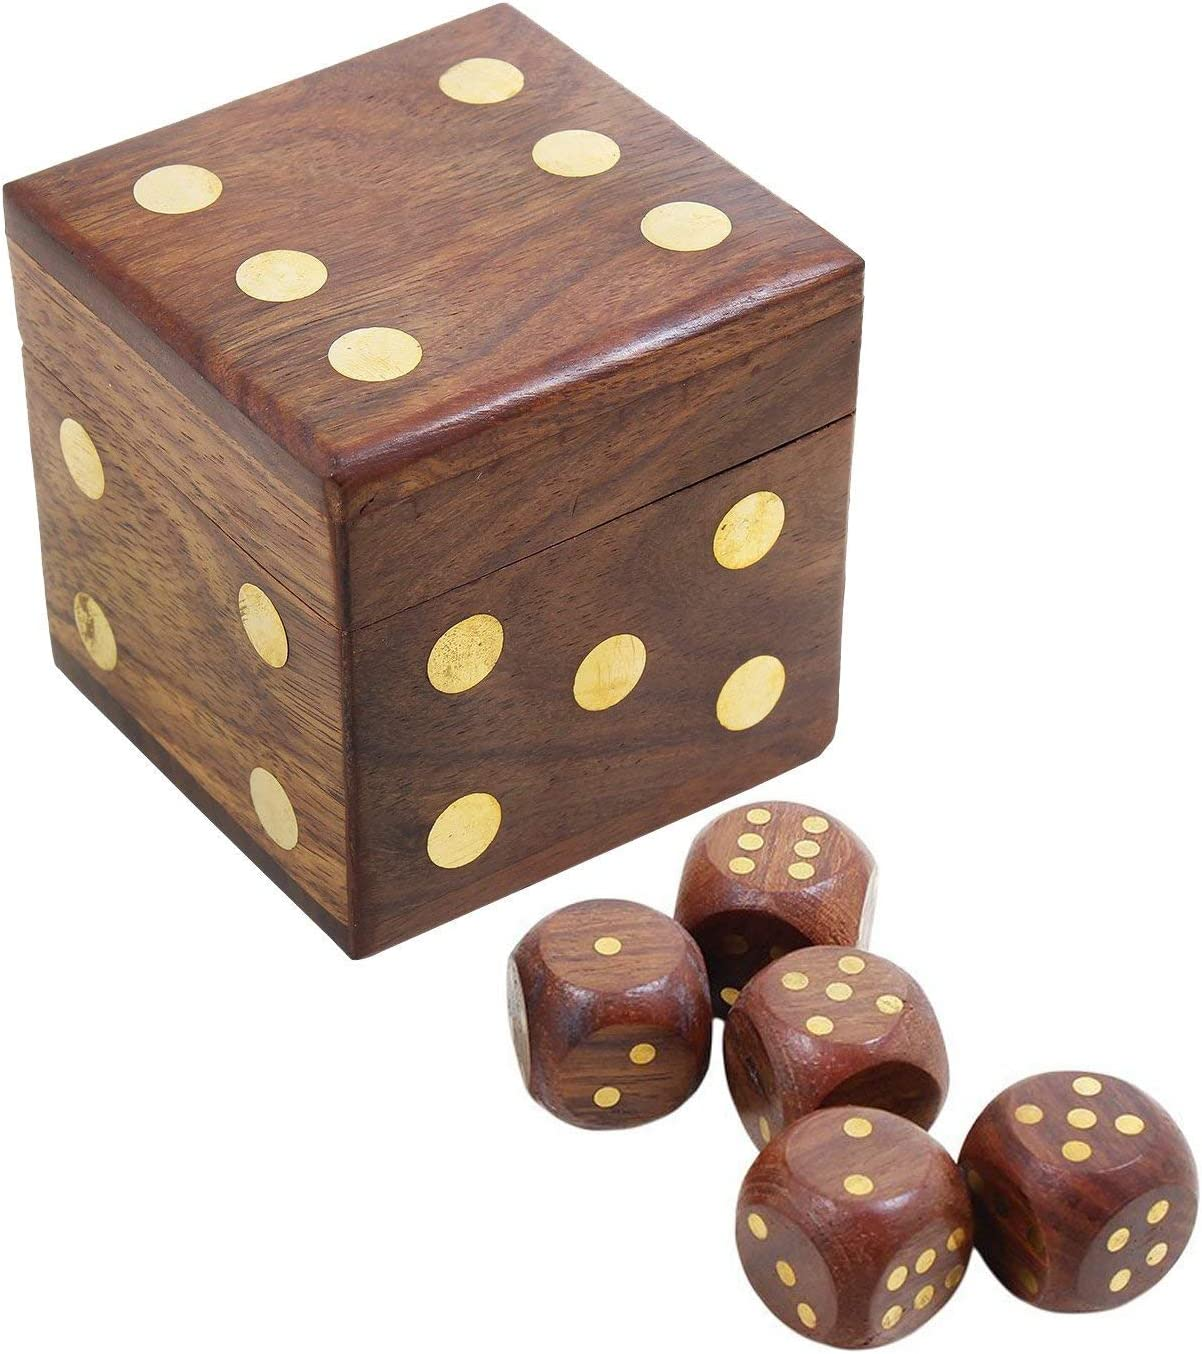 Amazon Com Willart Dice Box Set Of 5 Dices Casino Ludo Snake Ladder Game Complete Handmade Vintage 20 Mm Brown With Wooden Storage Box Handmade Square For Any Age Group Toys Games